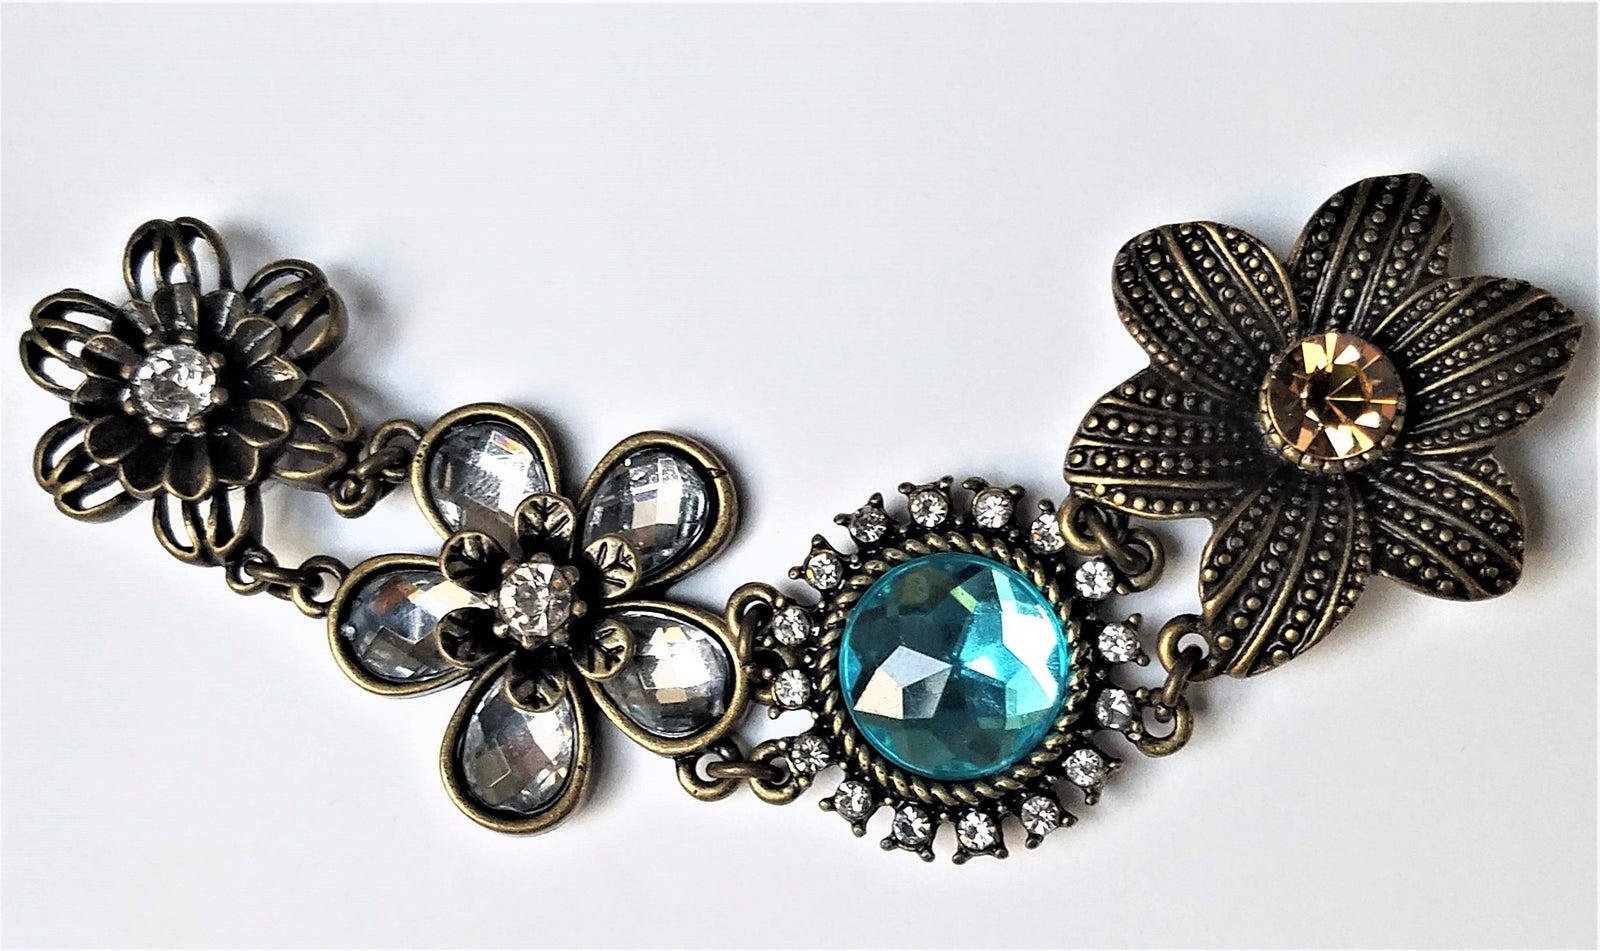 Rhinestone Flower Magnetic Jewelry String - QB's Magnetic Creations